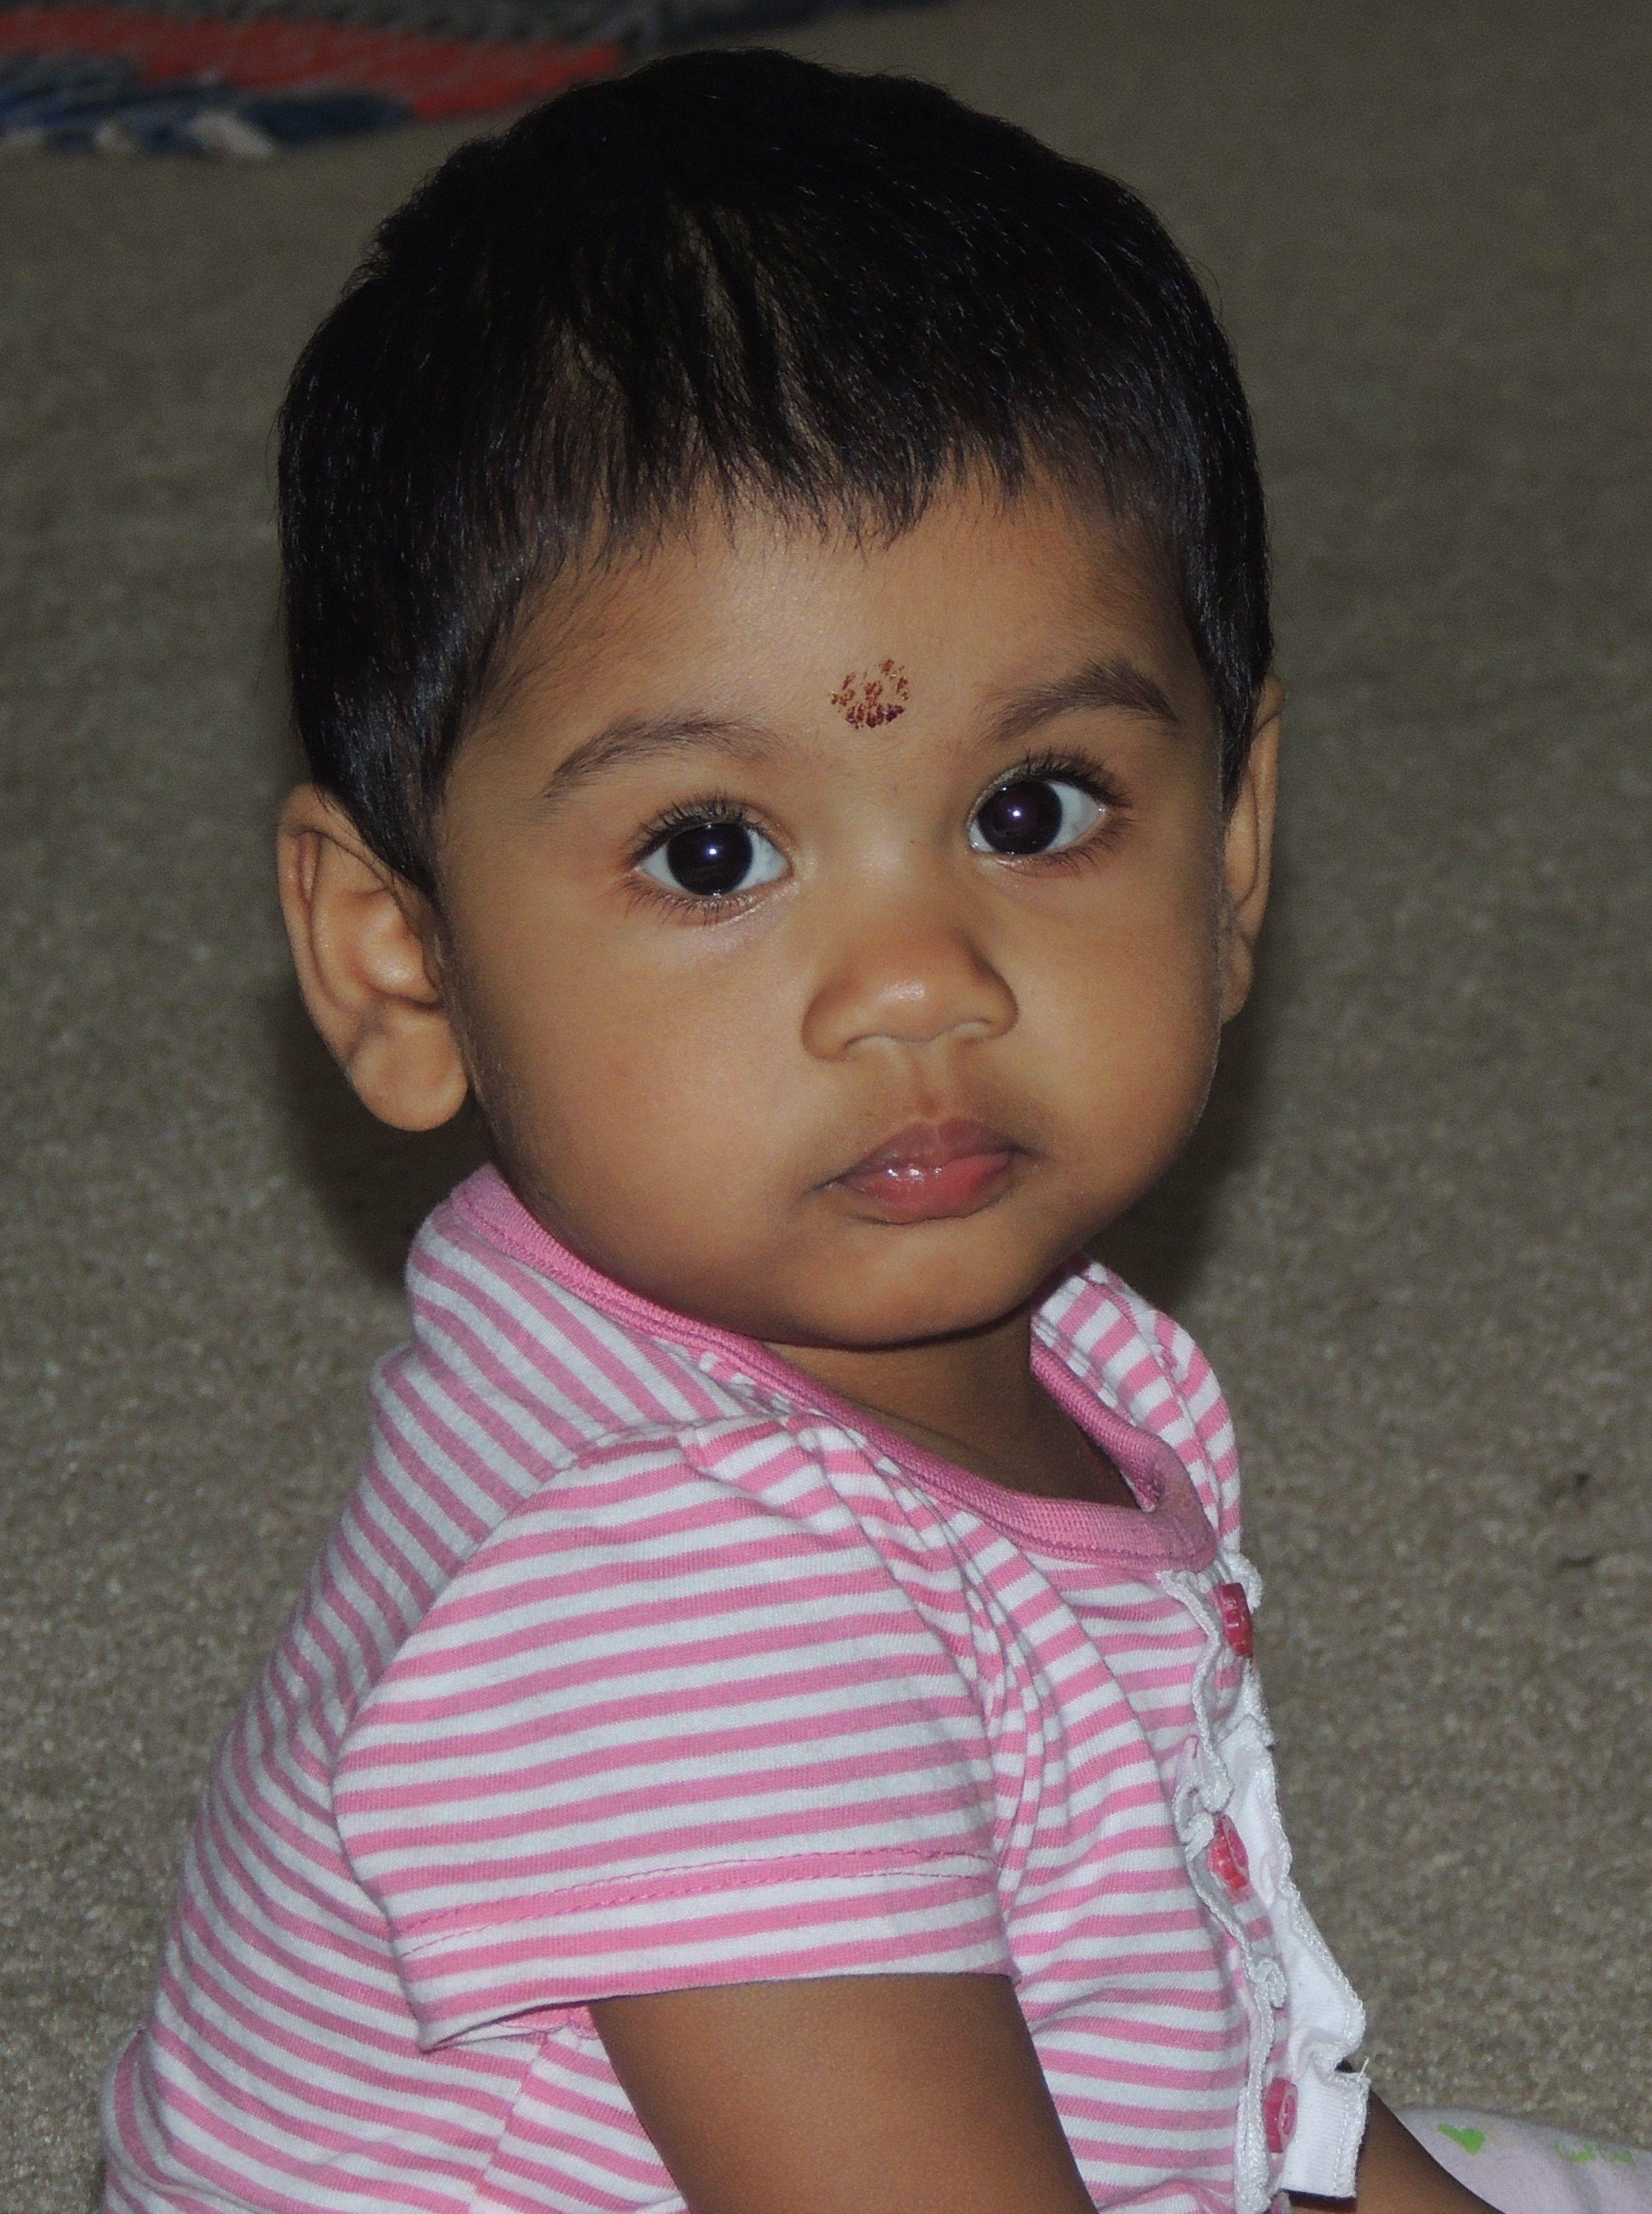 Geeta Indian Desi Infant Toddlers Play Group Lockport Il Meetup